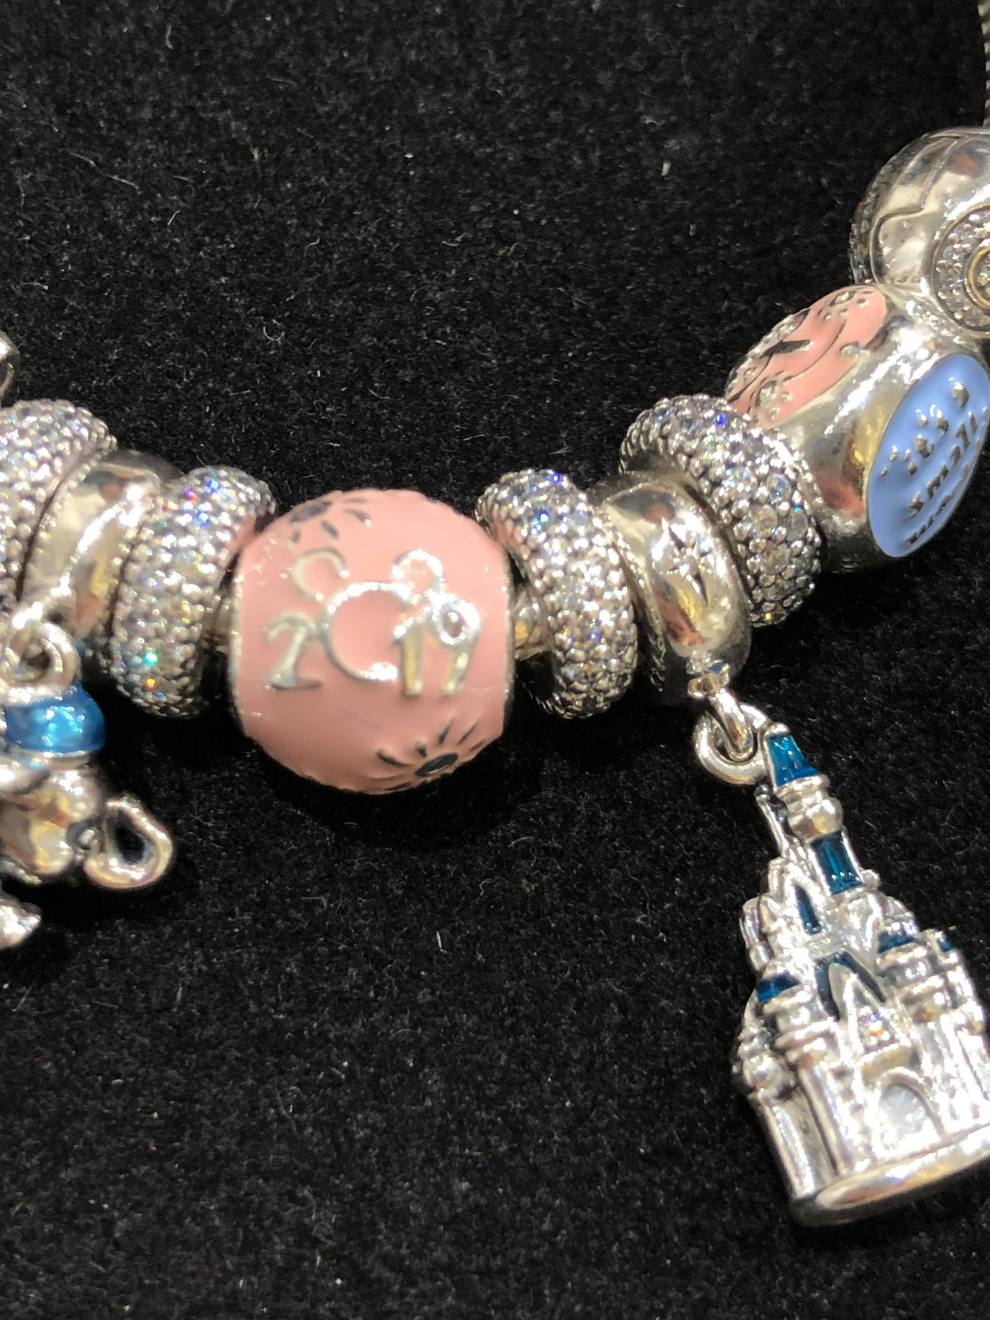 2fec8bfac The 2019 Disney Parks Exclusive Pandora Charm Is Here!